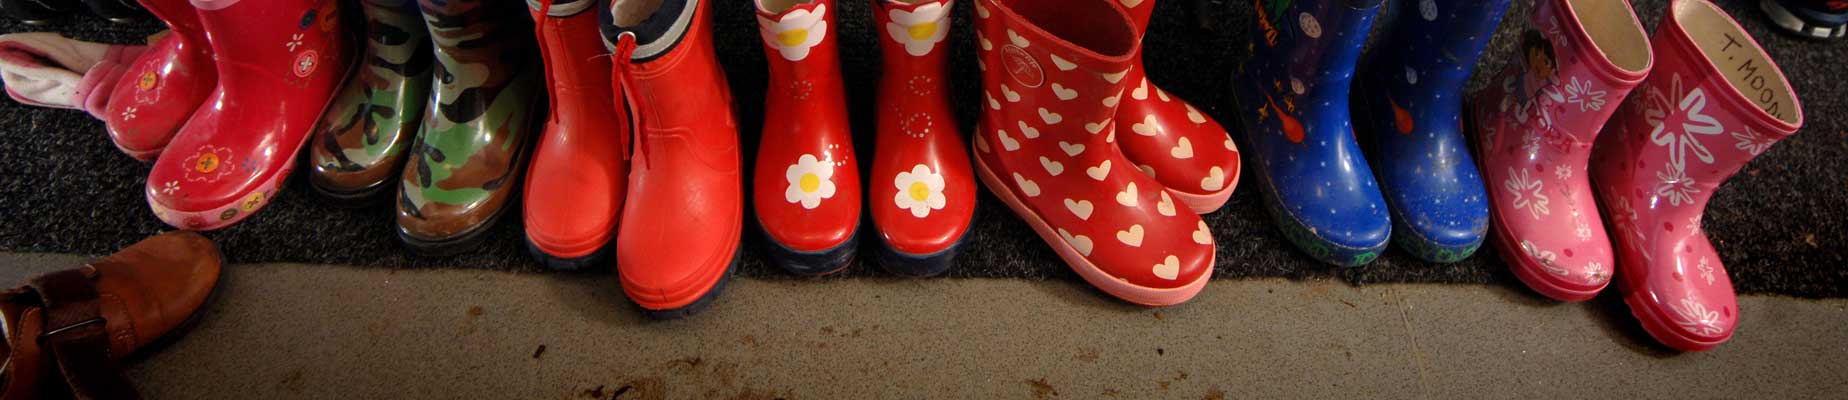 Children's wellies for outdoor learning